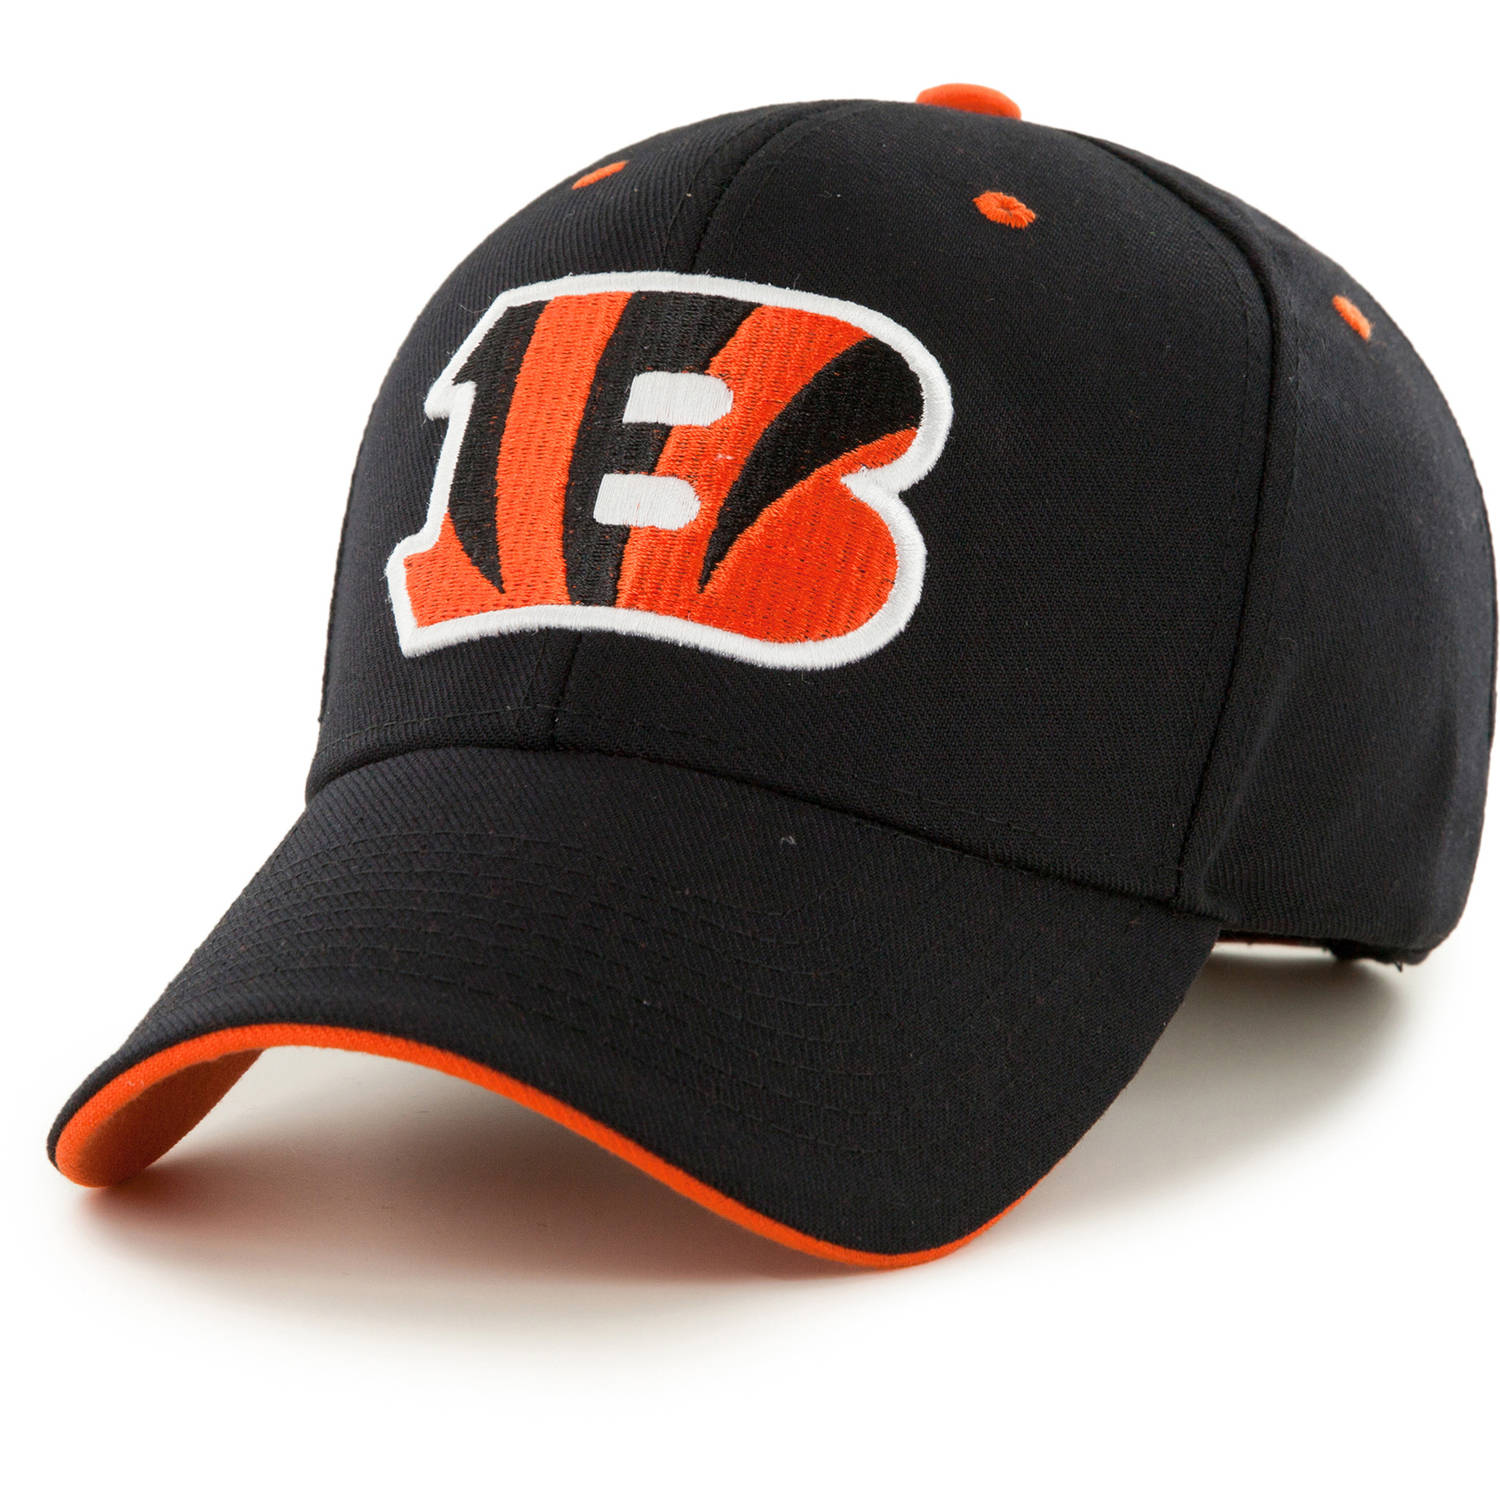 NFL Cincinnati Bengals Mass Money Maker Cap - Fan Favorite